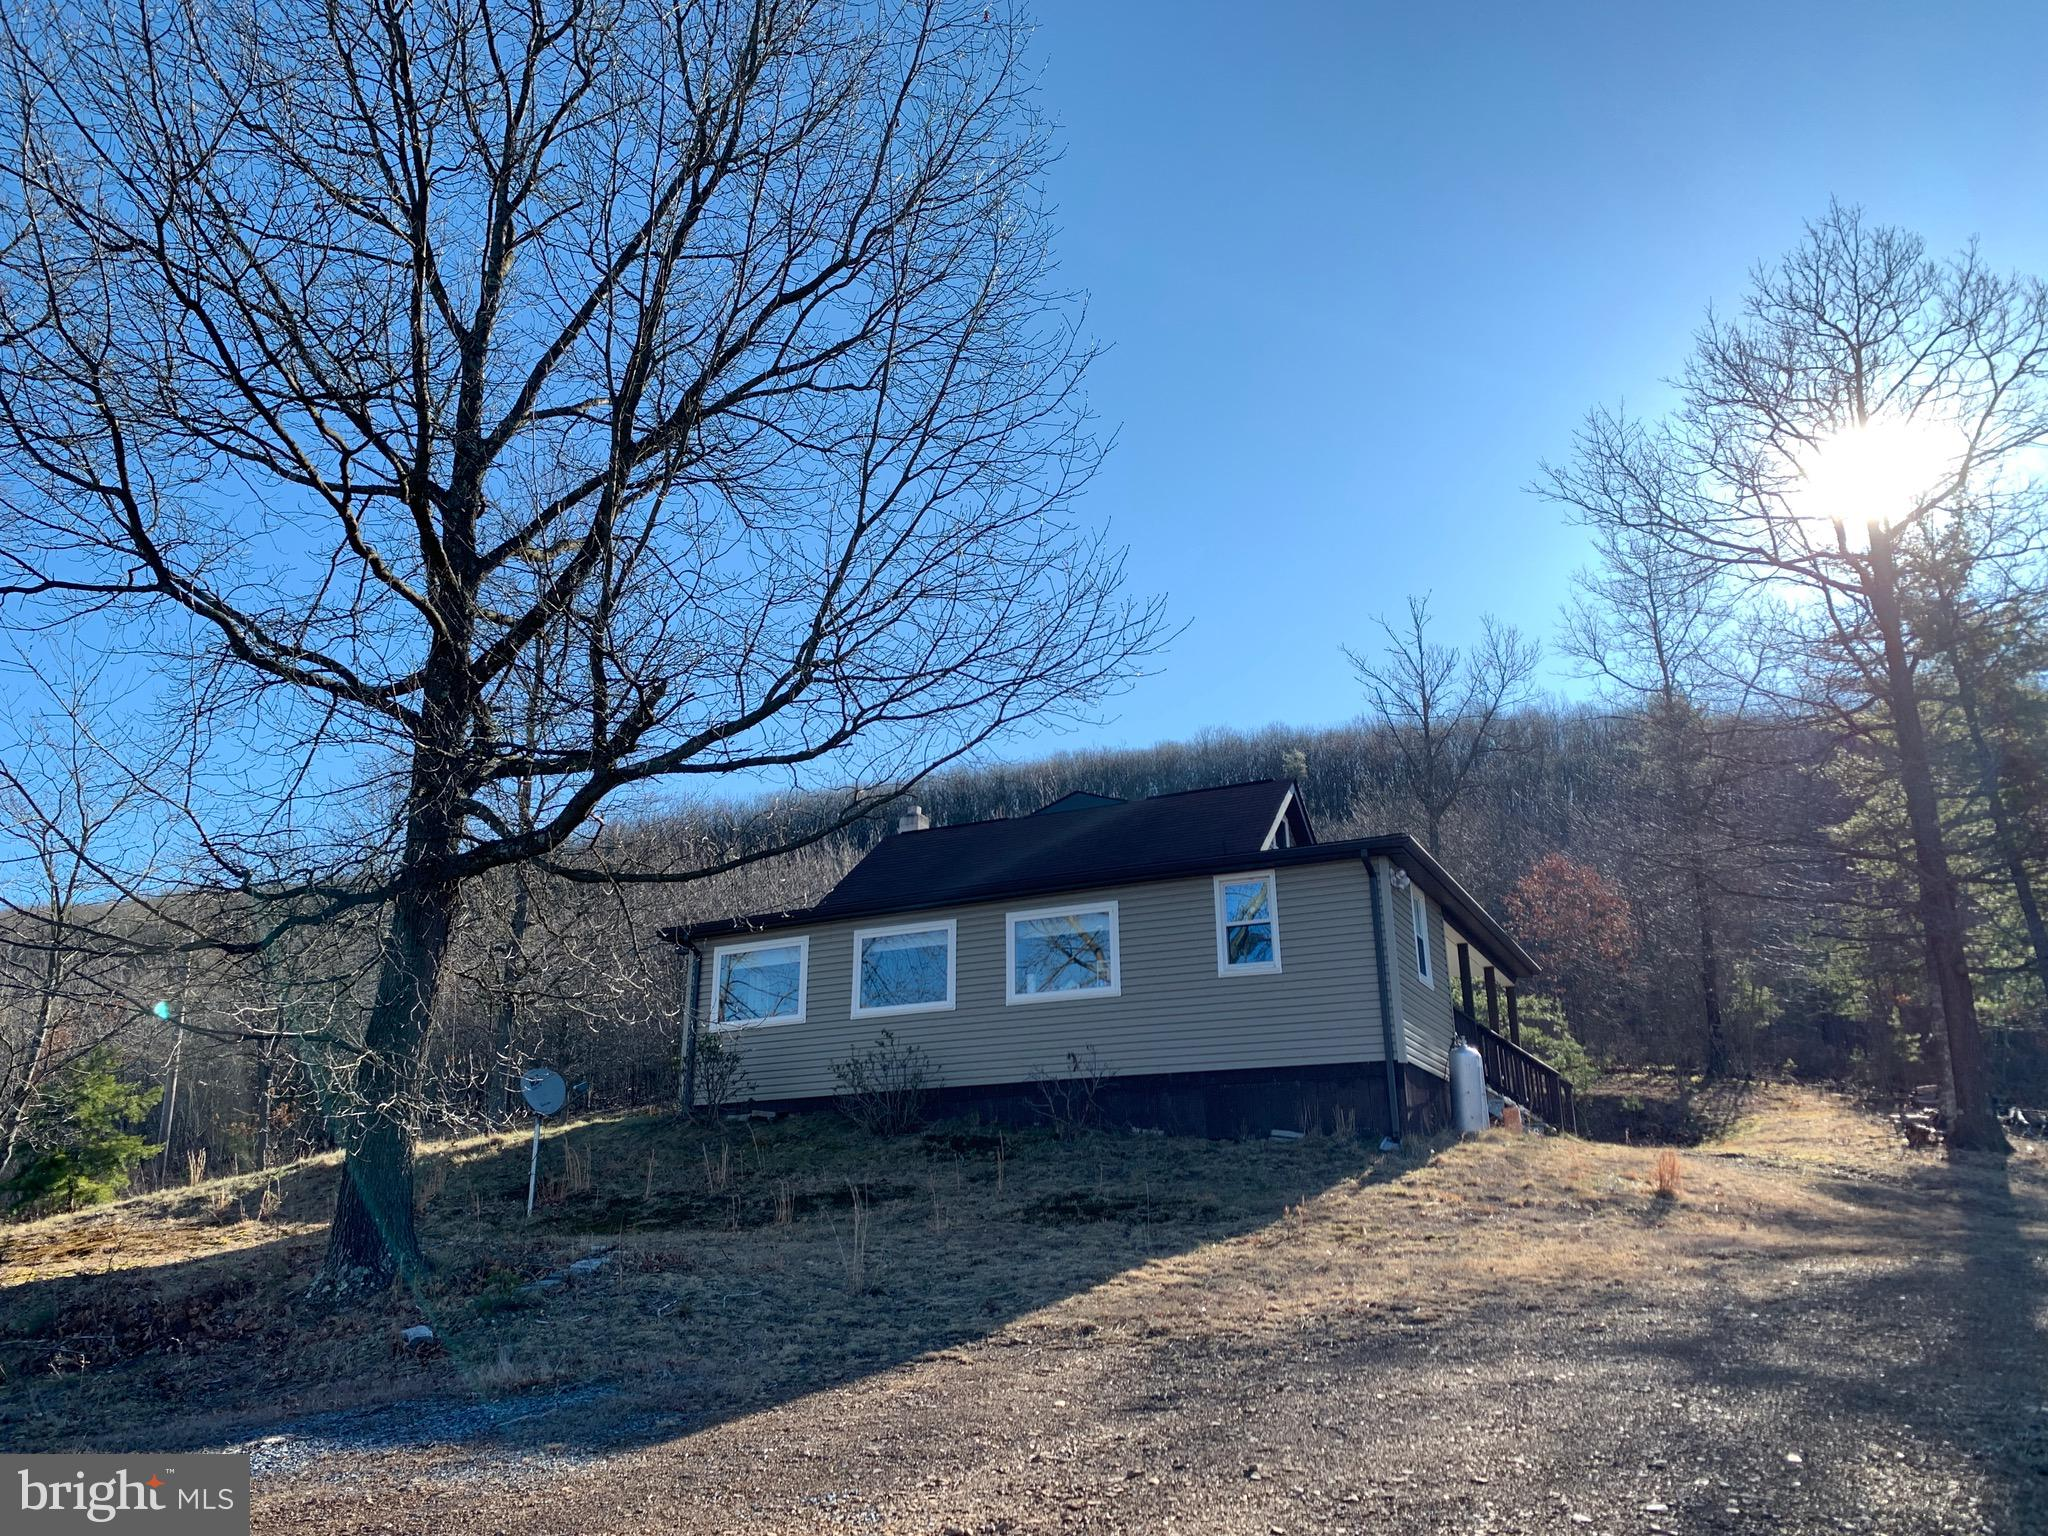 5775 RICE RD, CLEARVILLE, PA 15535